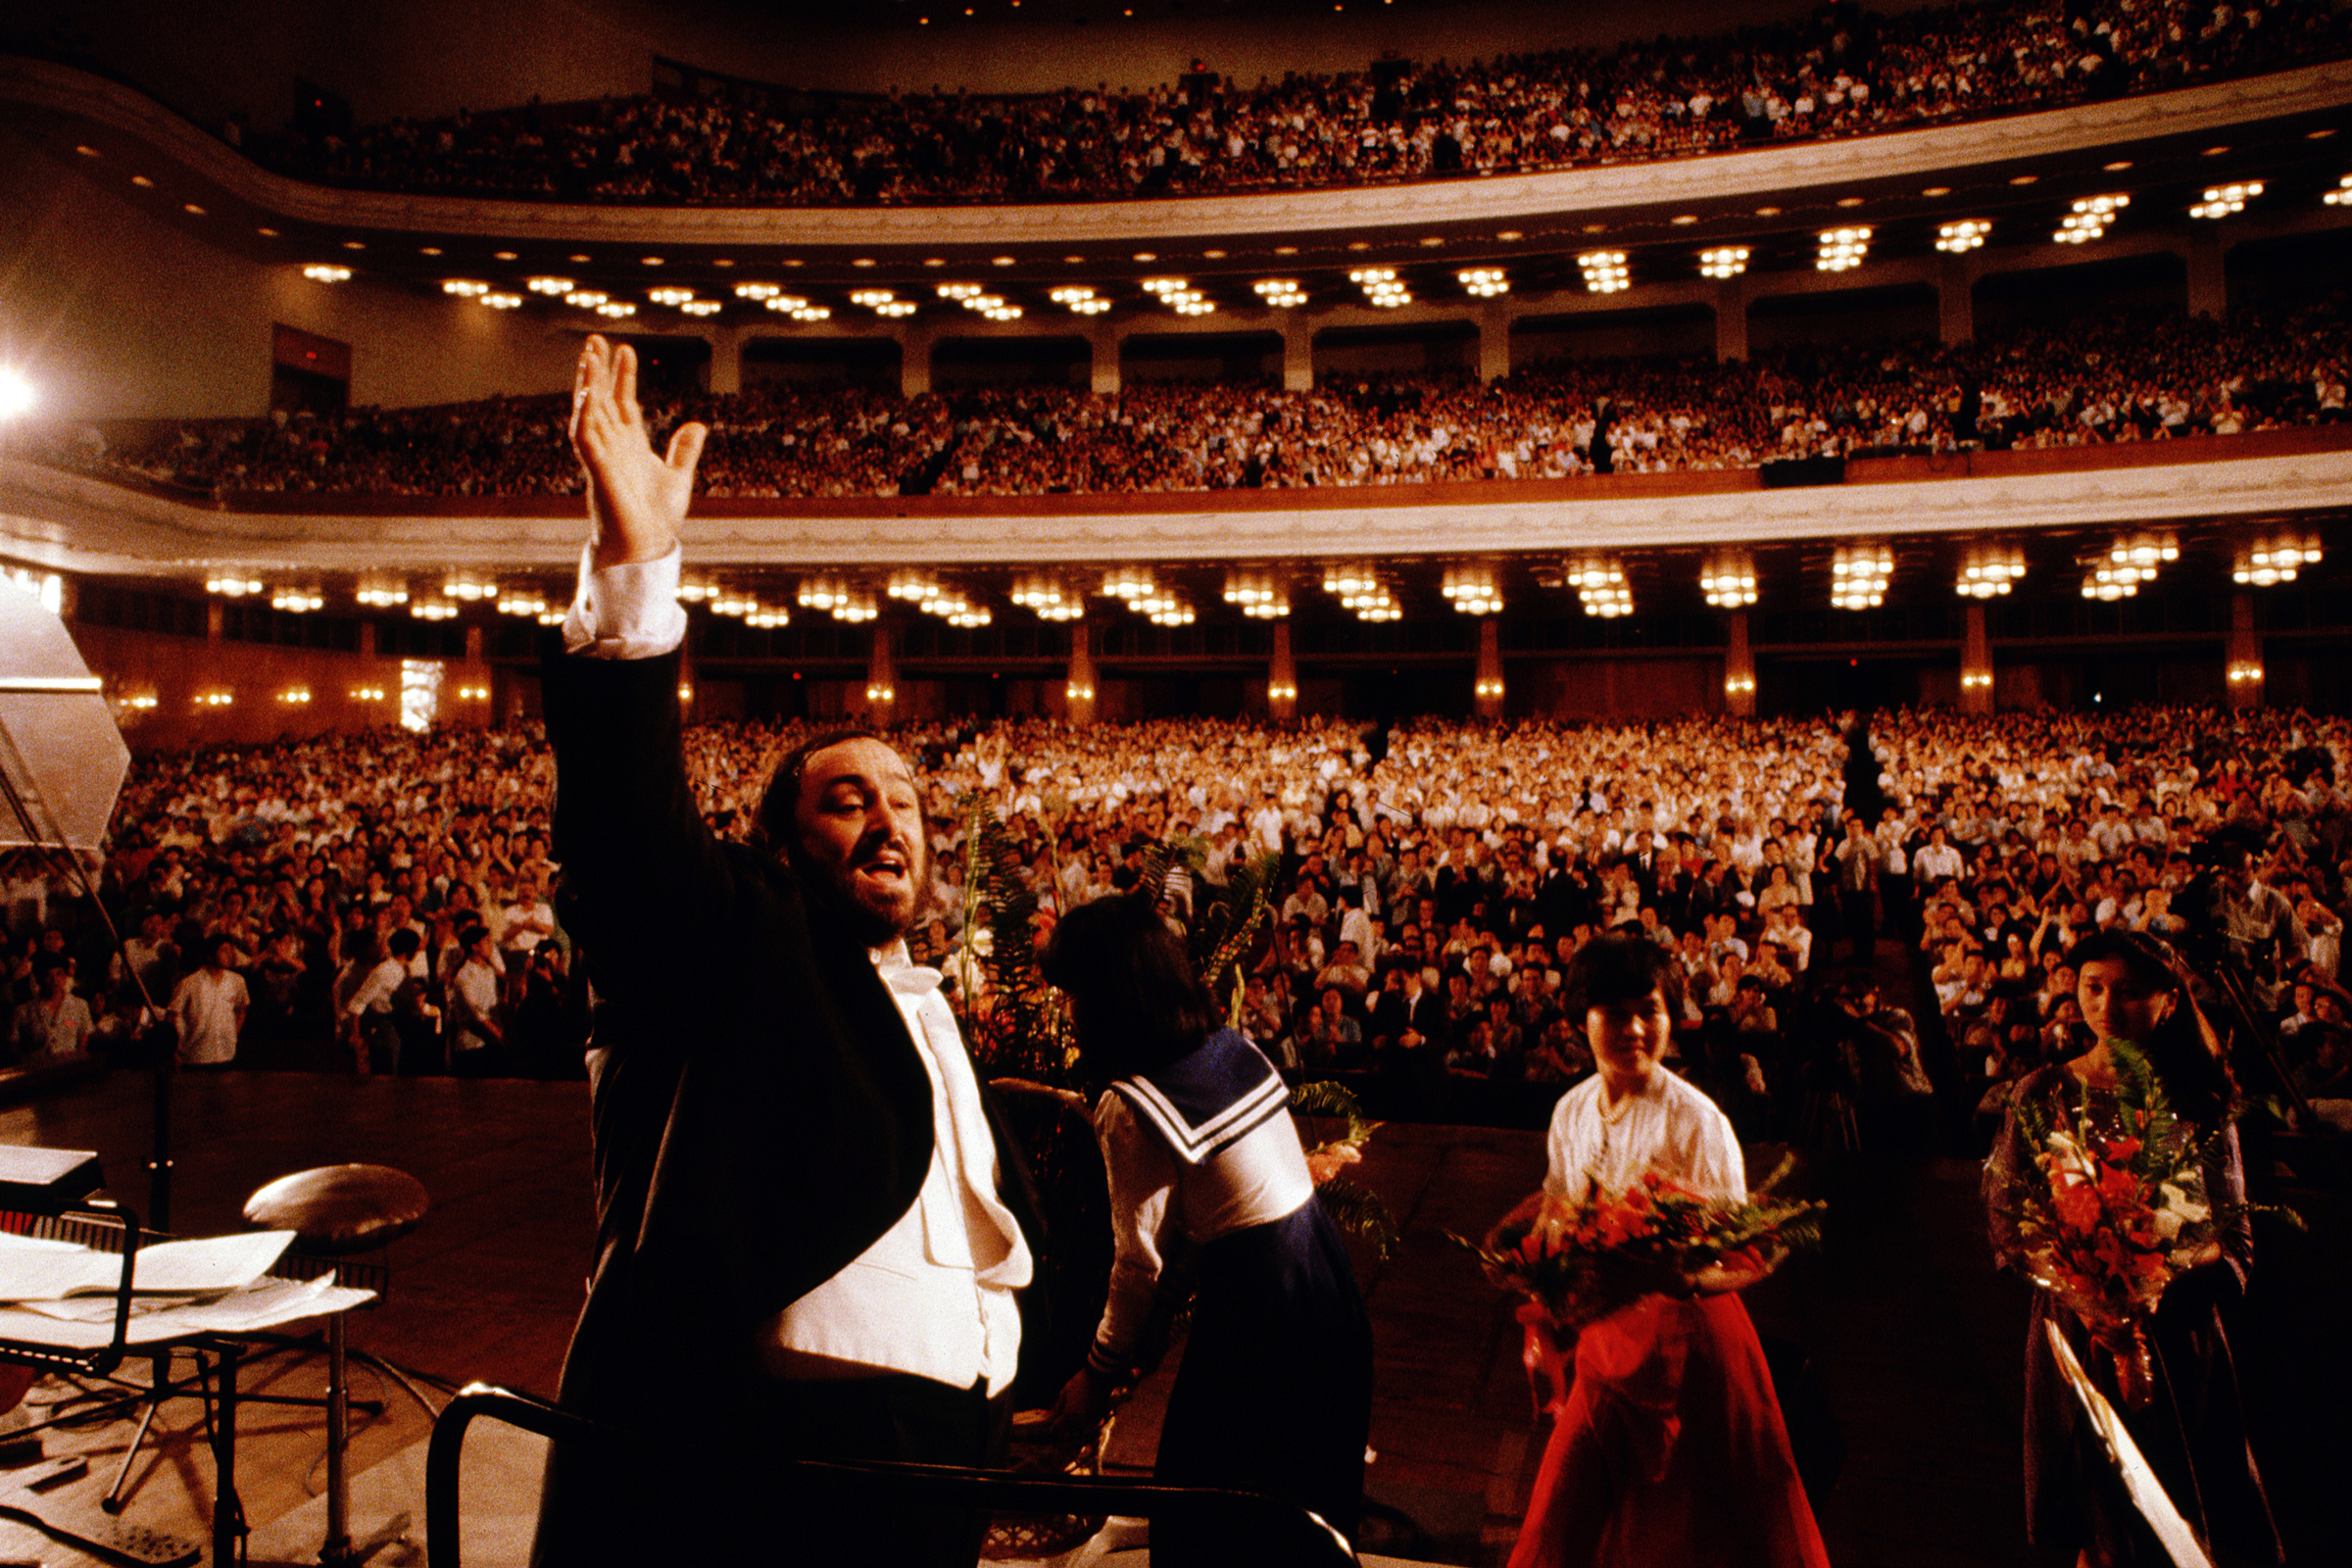 Pavarotti performs at the People's Assembly in Peking, China. (Photo by  Vittoriano Rastelli/CORBIS/Corbis via Getty Images)